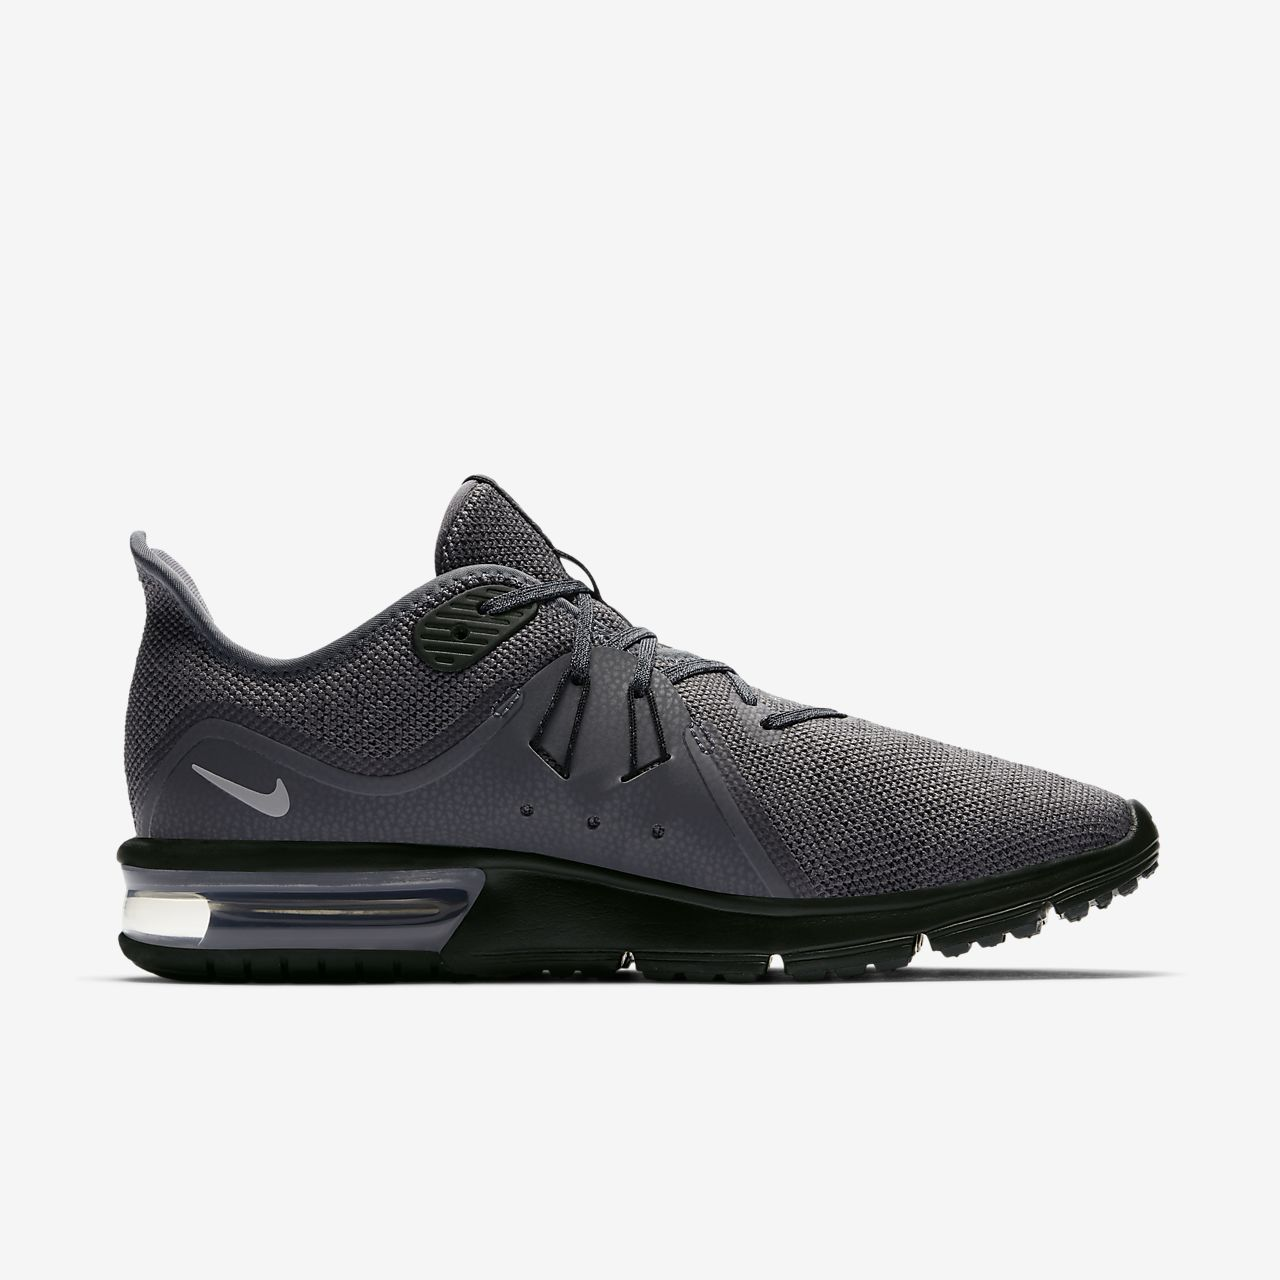 Cheap Nike Air Max Sequent White Black Running Shoes Shoes ZWRKEOOF